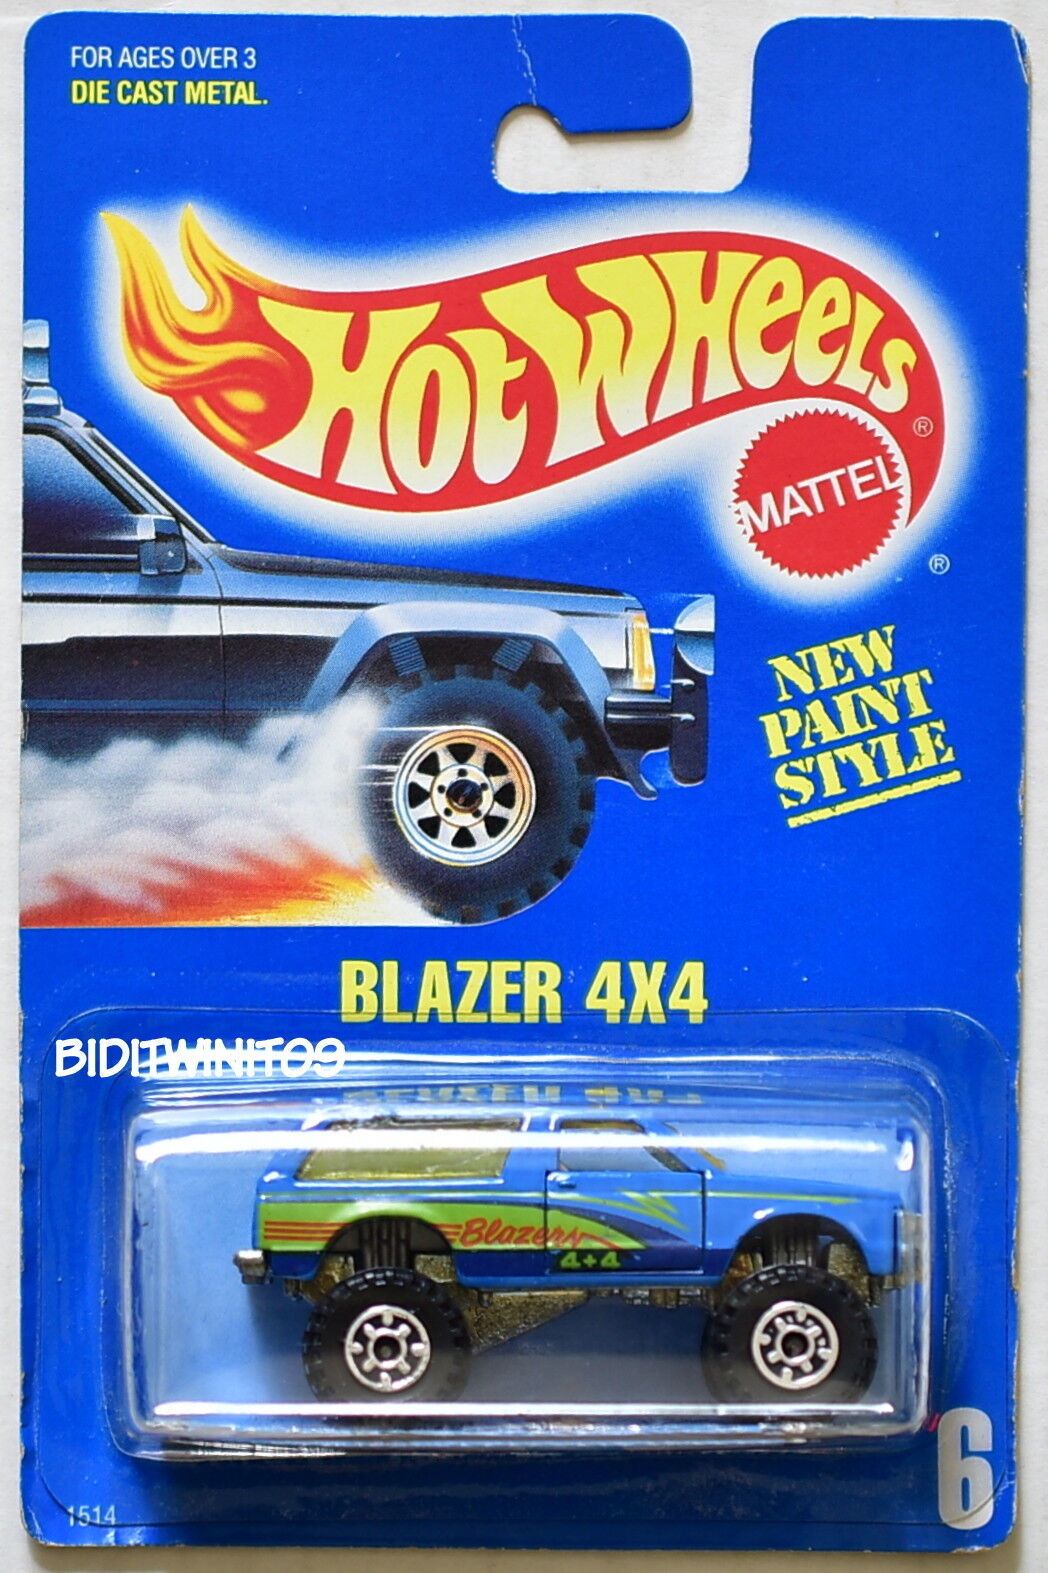 HOT WHEELS WHEELS WHEELS 1989 blueE CARD BLAZER 4X4 W  GEAR WHEELS VARIATION 08 W+ d9d505